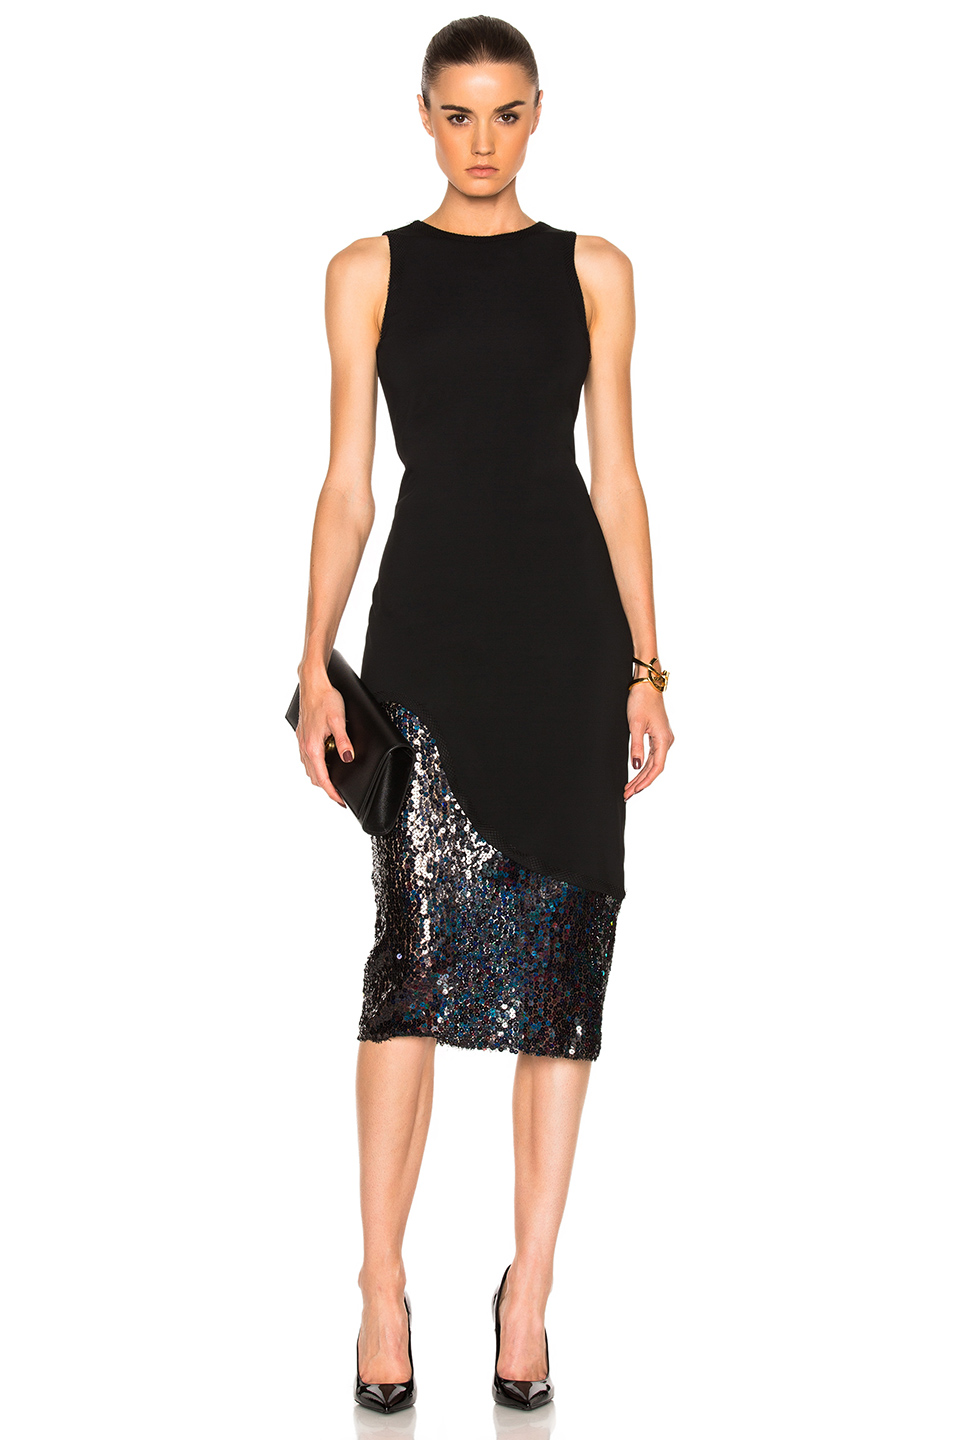 HANEY for FWRD Natasha Dress in Black